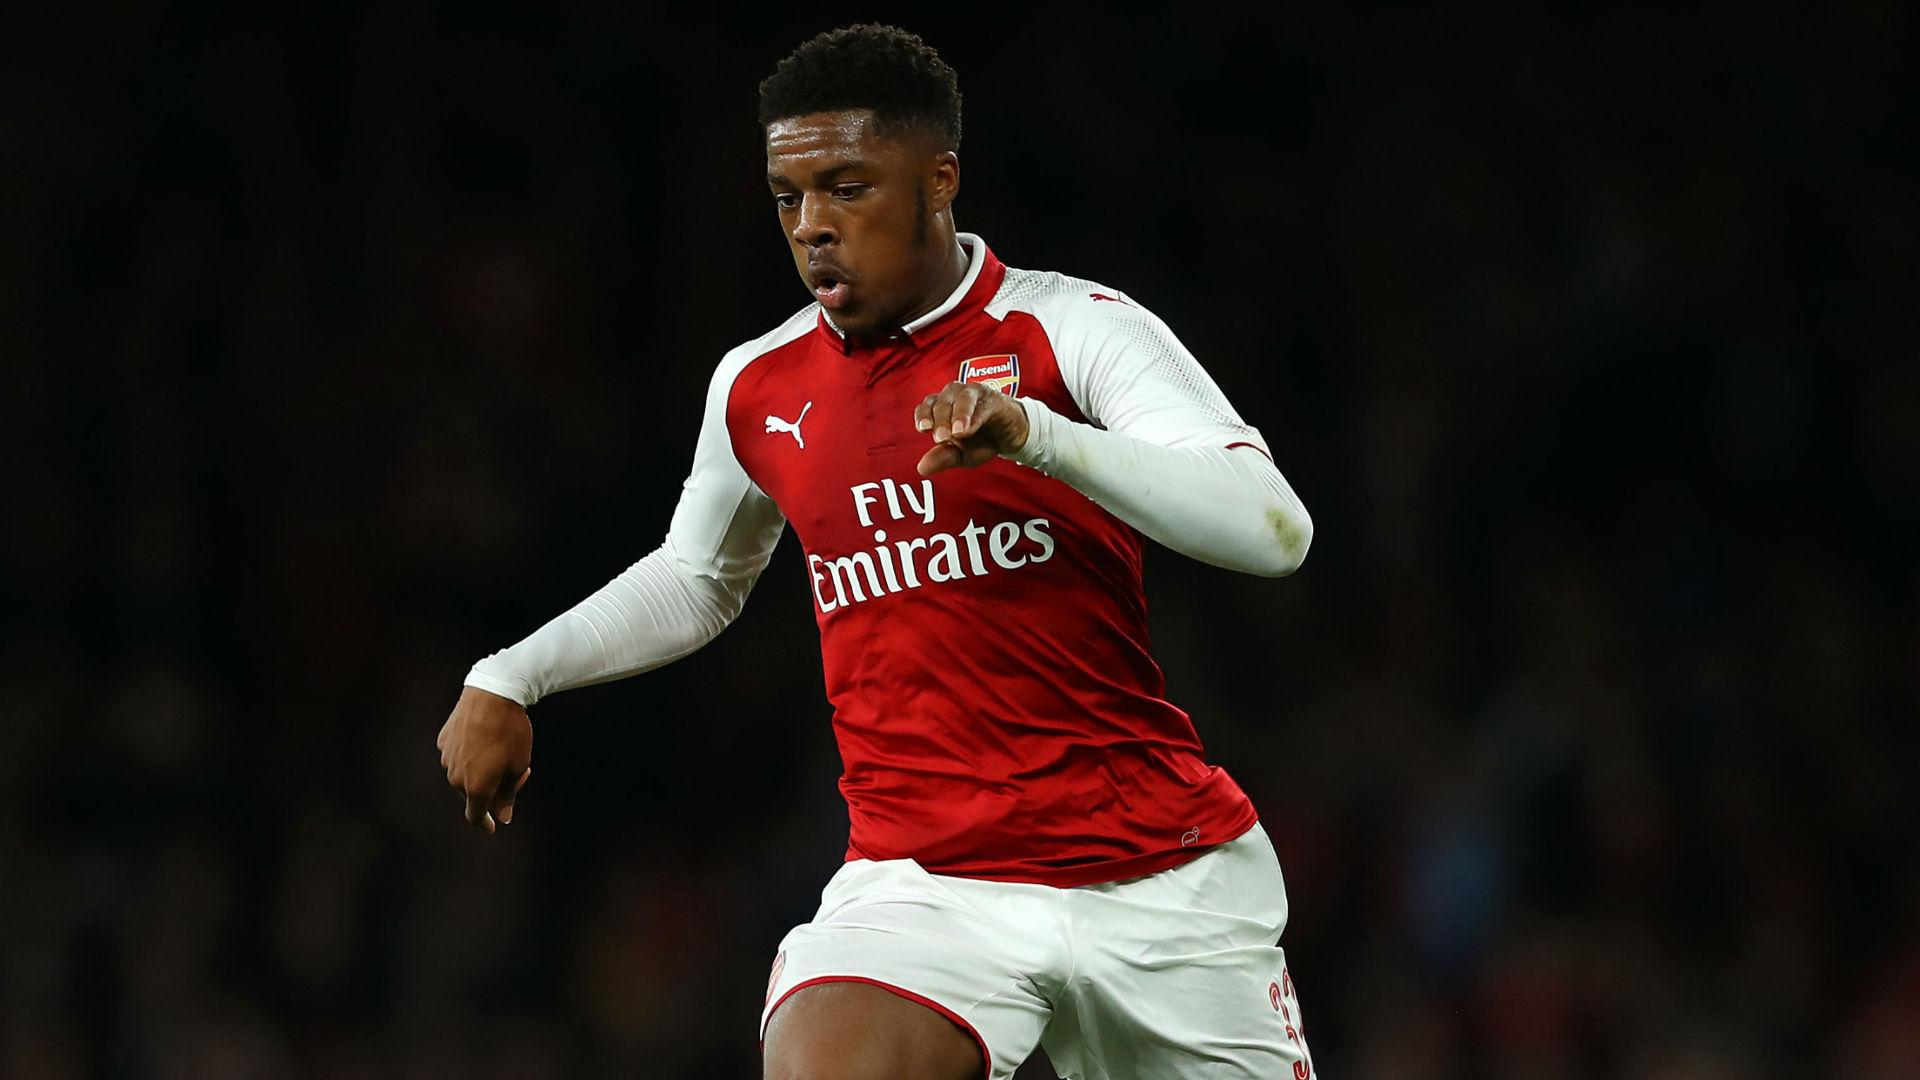 Arsenal s Akpom closes in on £2m PAOK move a943c5eff